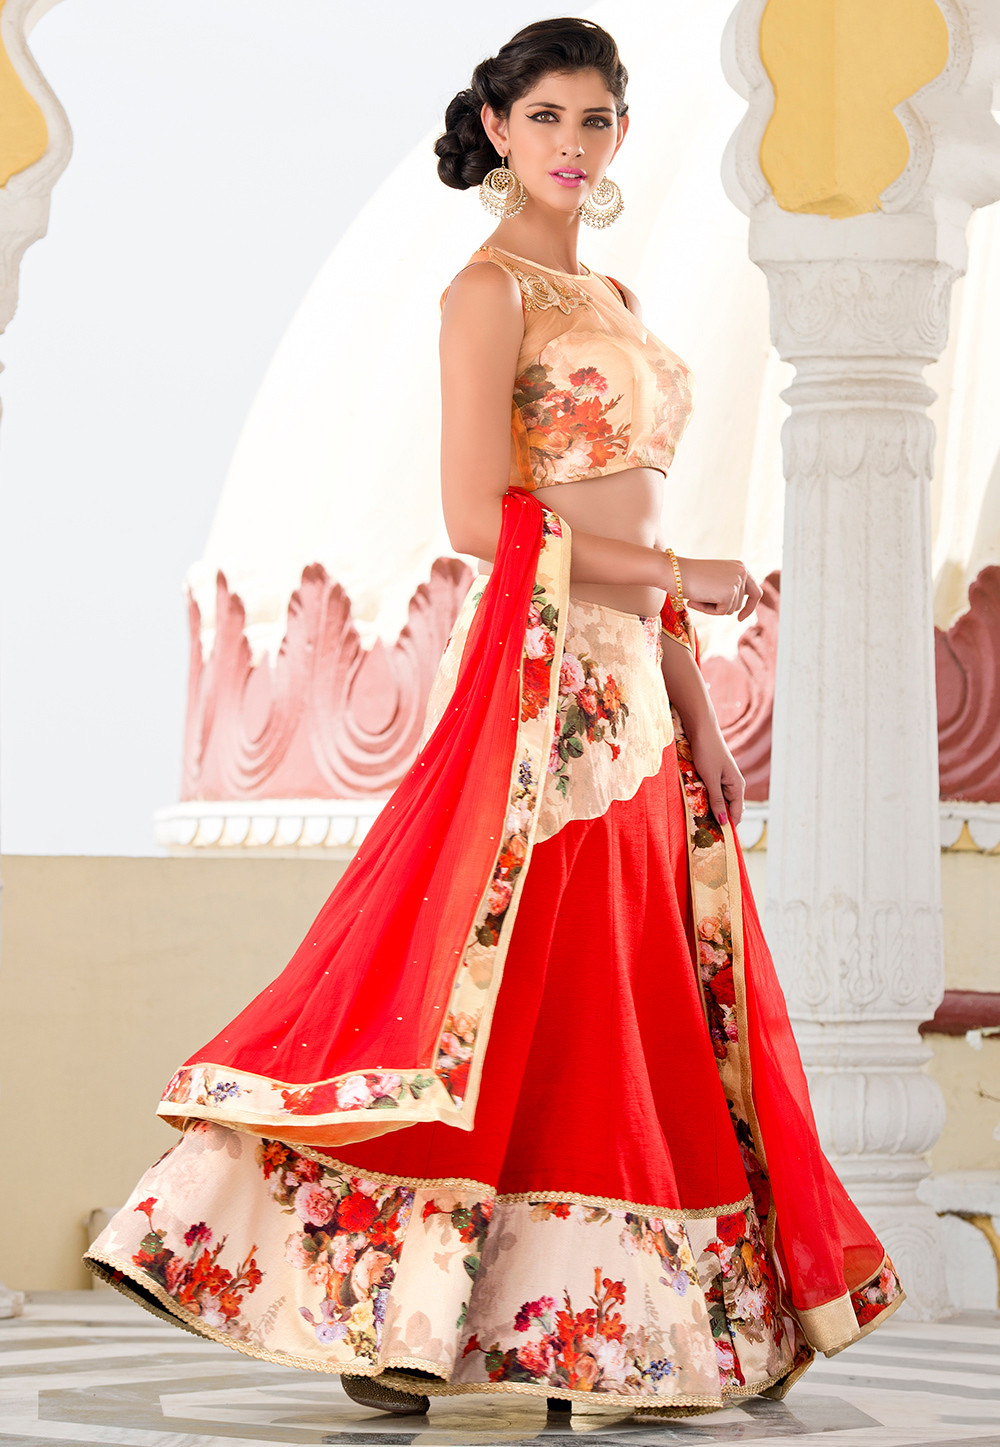 4808e644c7 Indian Lehenga Choli - Its Origin, History And More | Utsavpedia